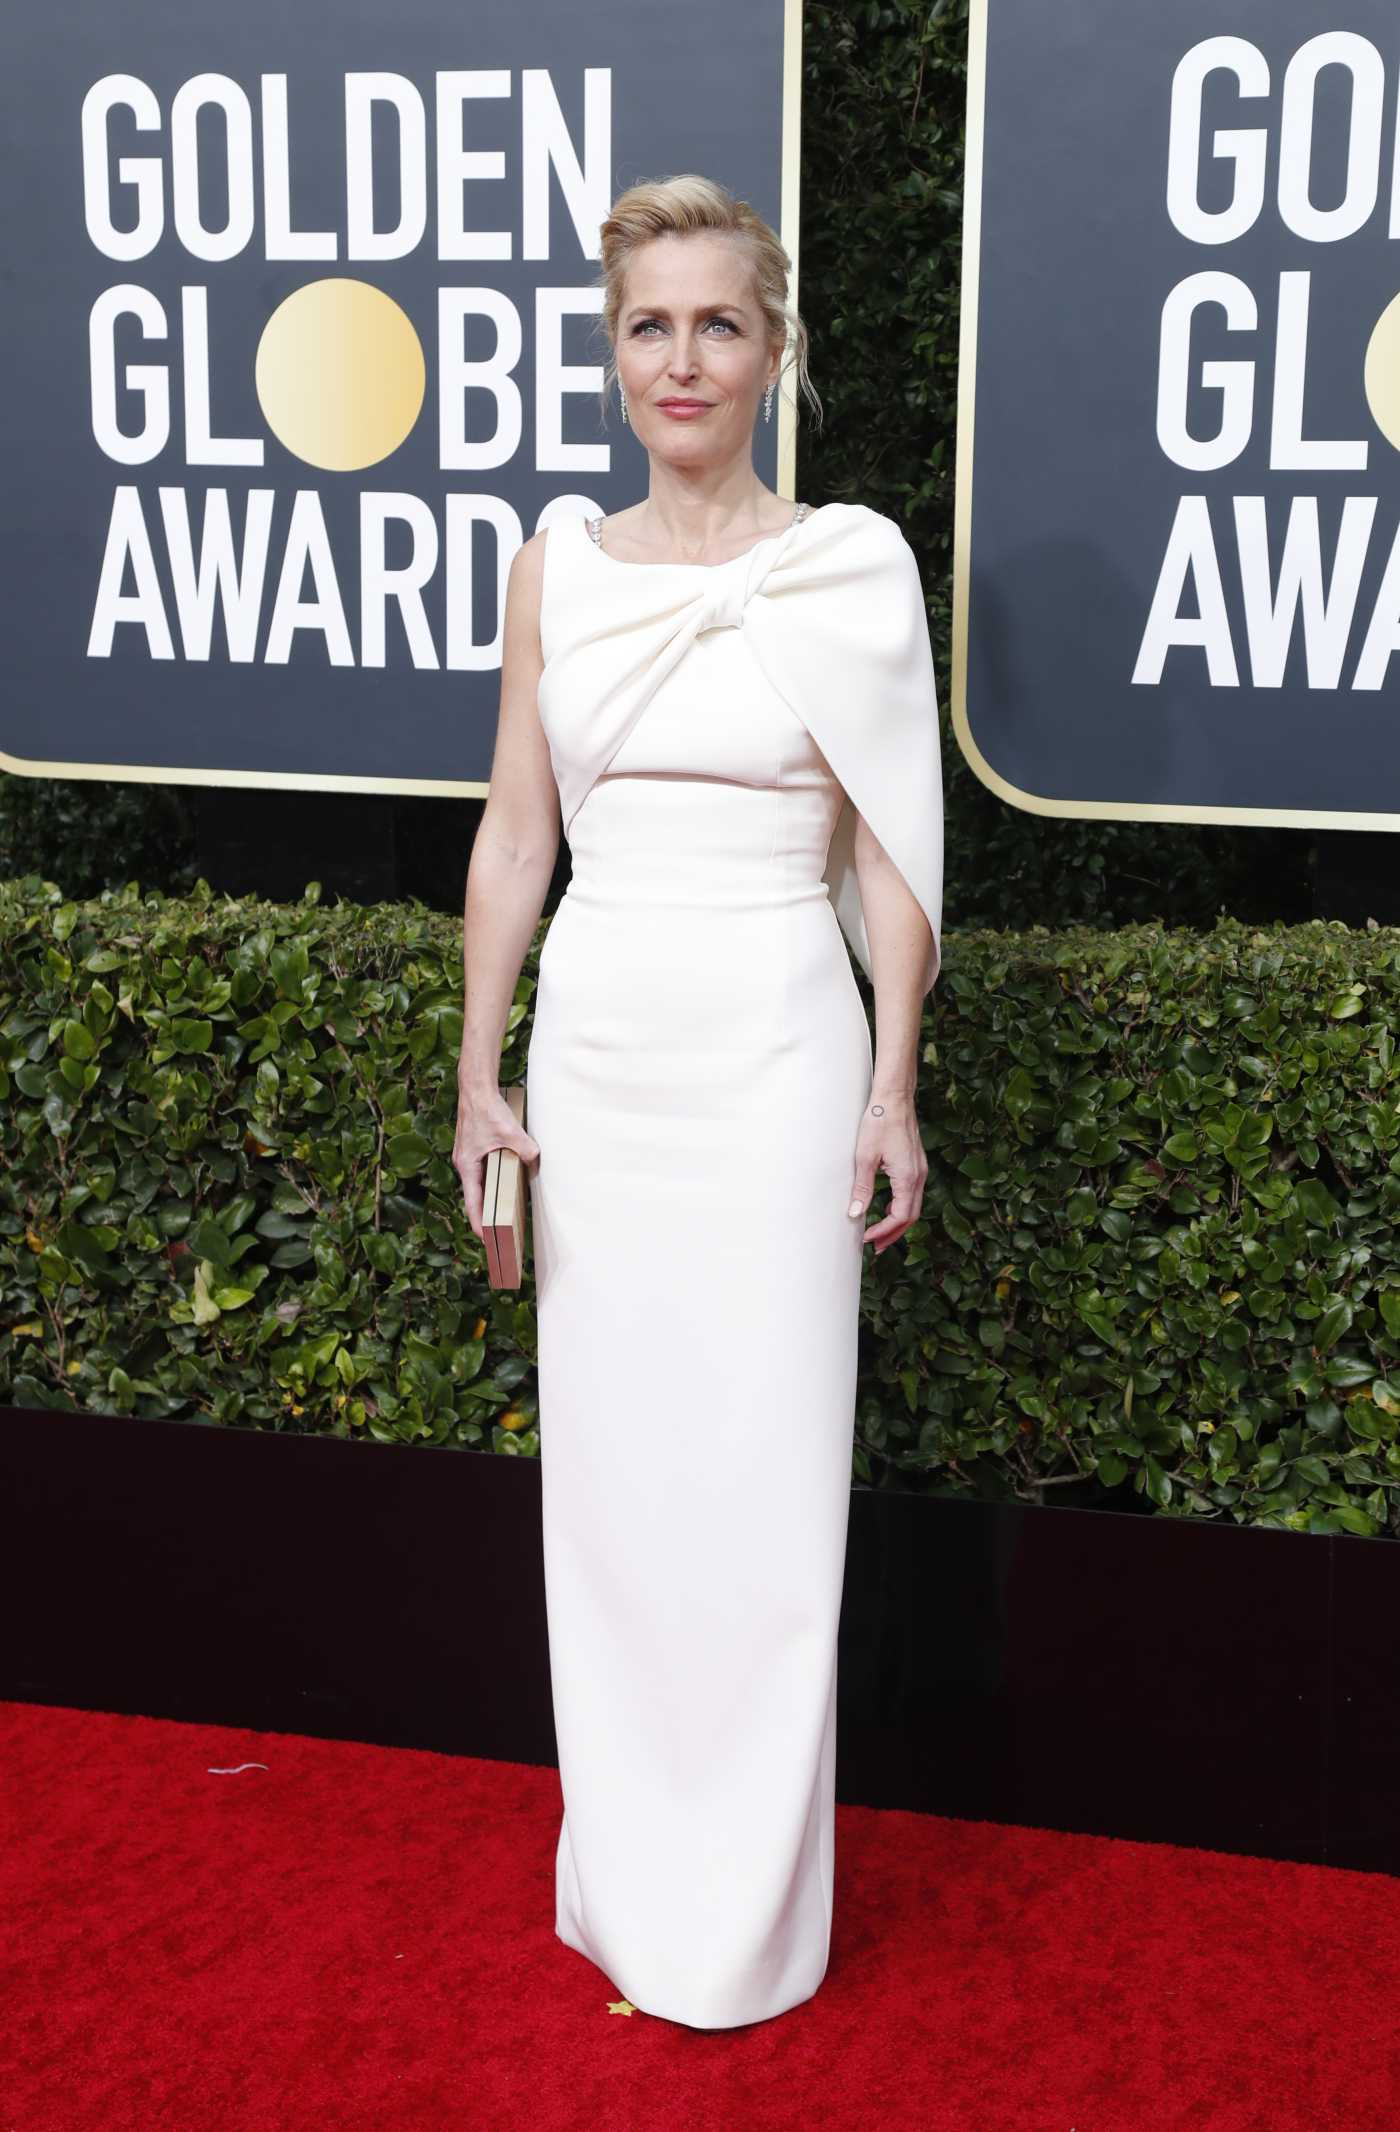 Gillian Anderson Attends the 77th Annual Golden Globe Awards at the Beverly Hilton Hotel in Beverly Hills 01/05/2020